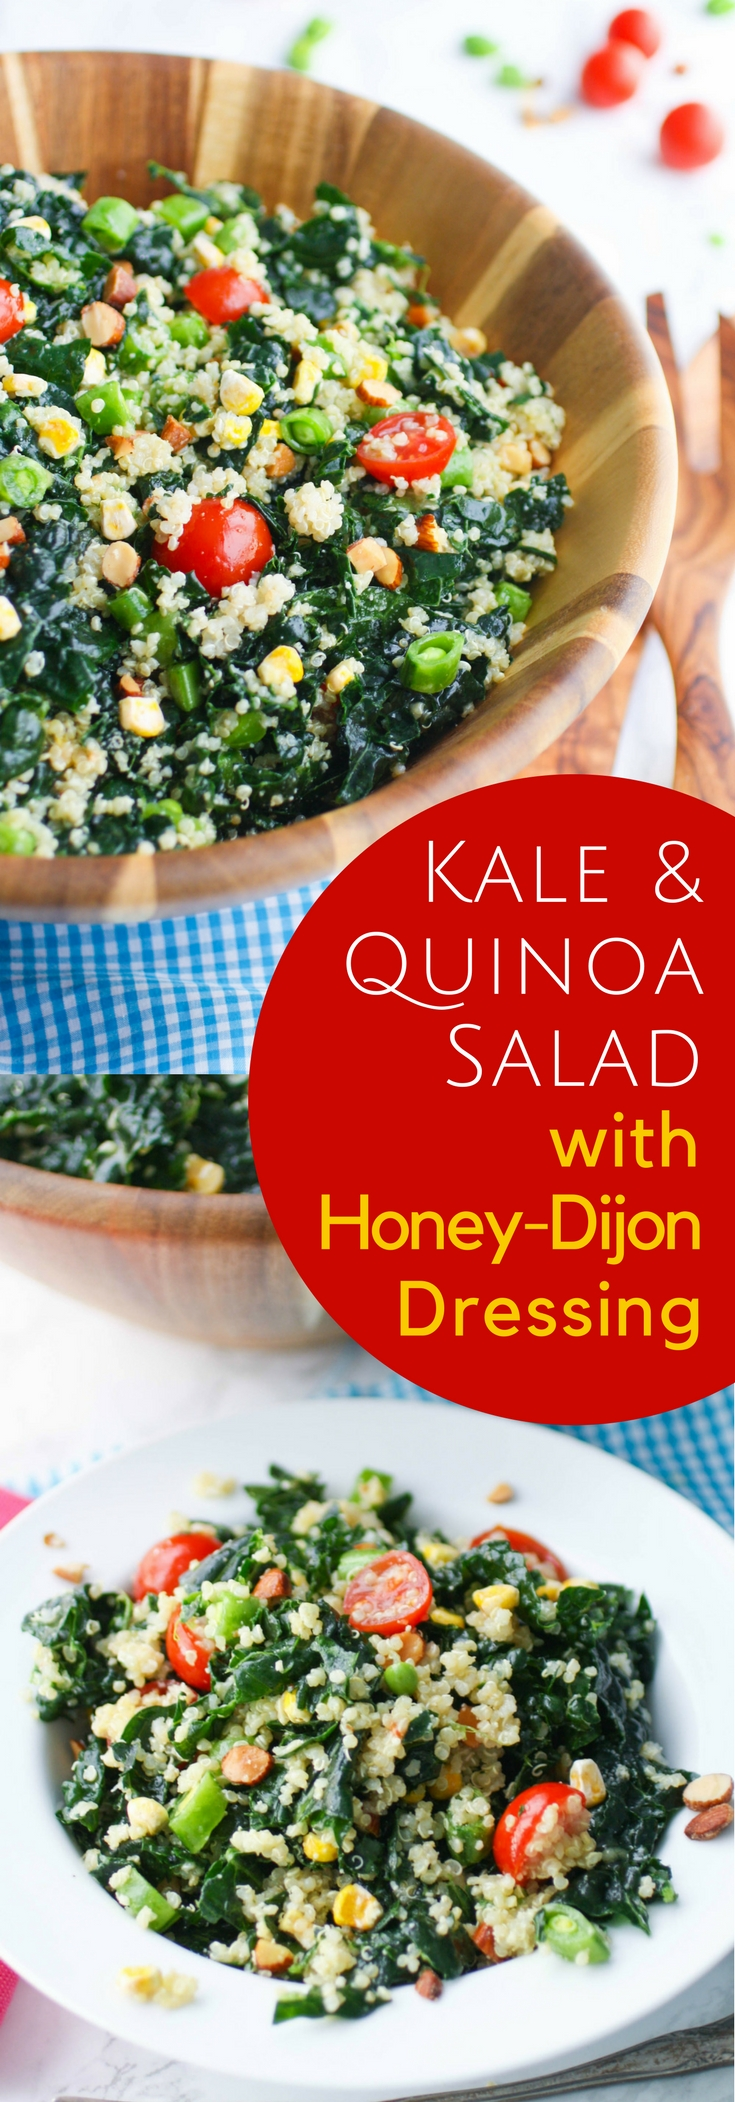 Kale and Quinoa Salad with Honey-Dijon Dressing is filled with your favorite healthy ingredients! You'll love to dig into a dish like Kale and Quinoa Salad with Honey-Dijon Dressing.